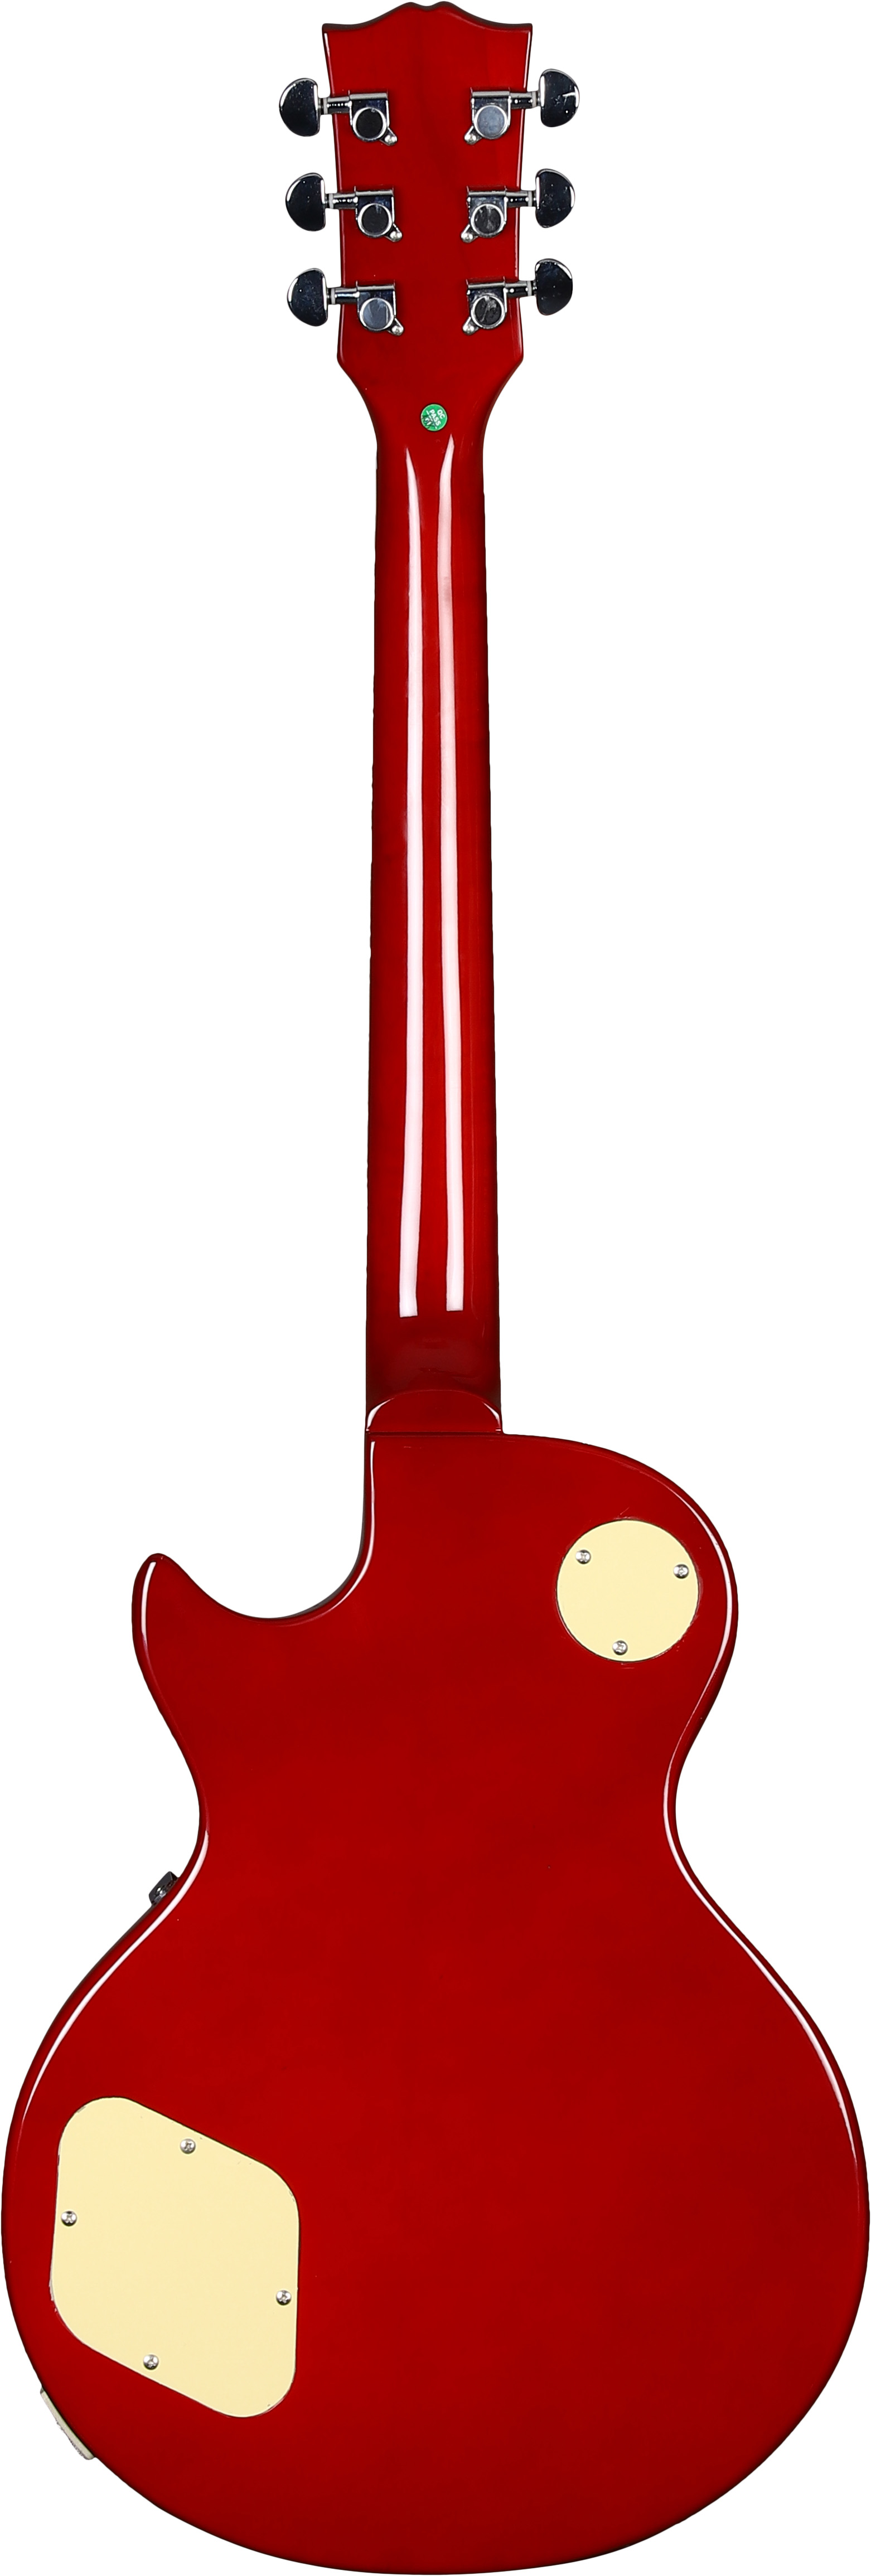 Vault-LP1-Ovangkol-Fretboard-Electric-Guitar-Cherry-Red-Burst-w-Gig-Bag thumbnail 5